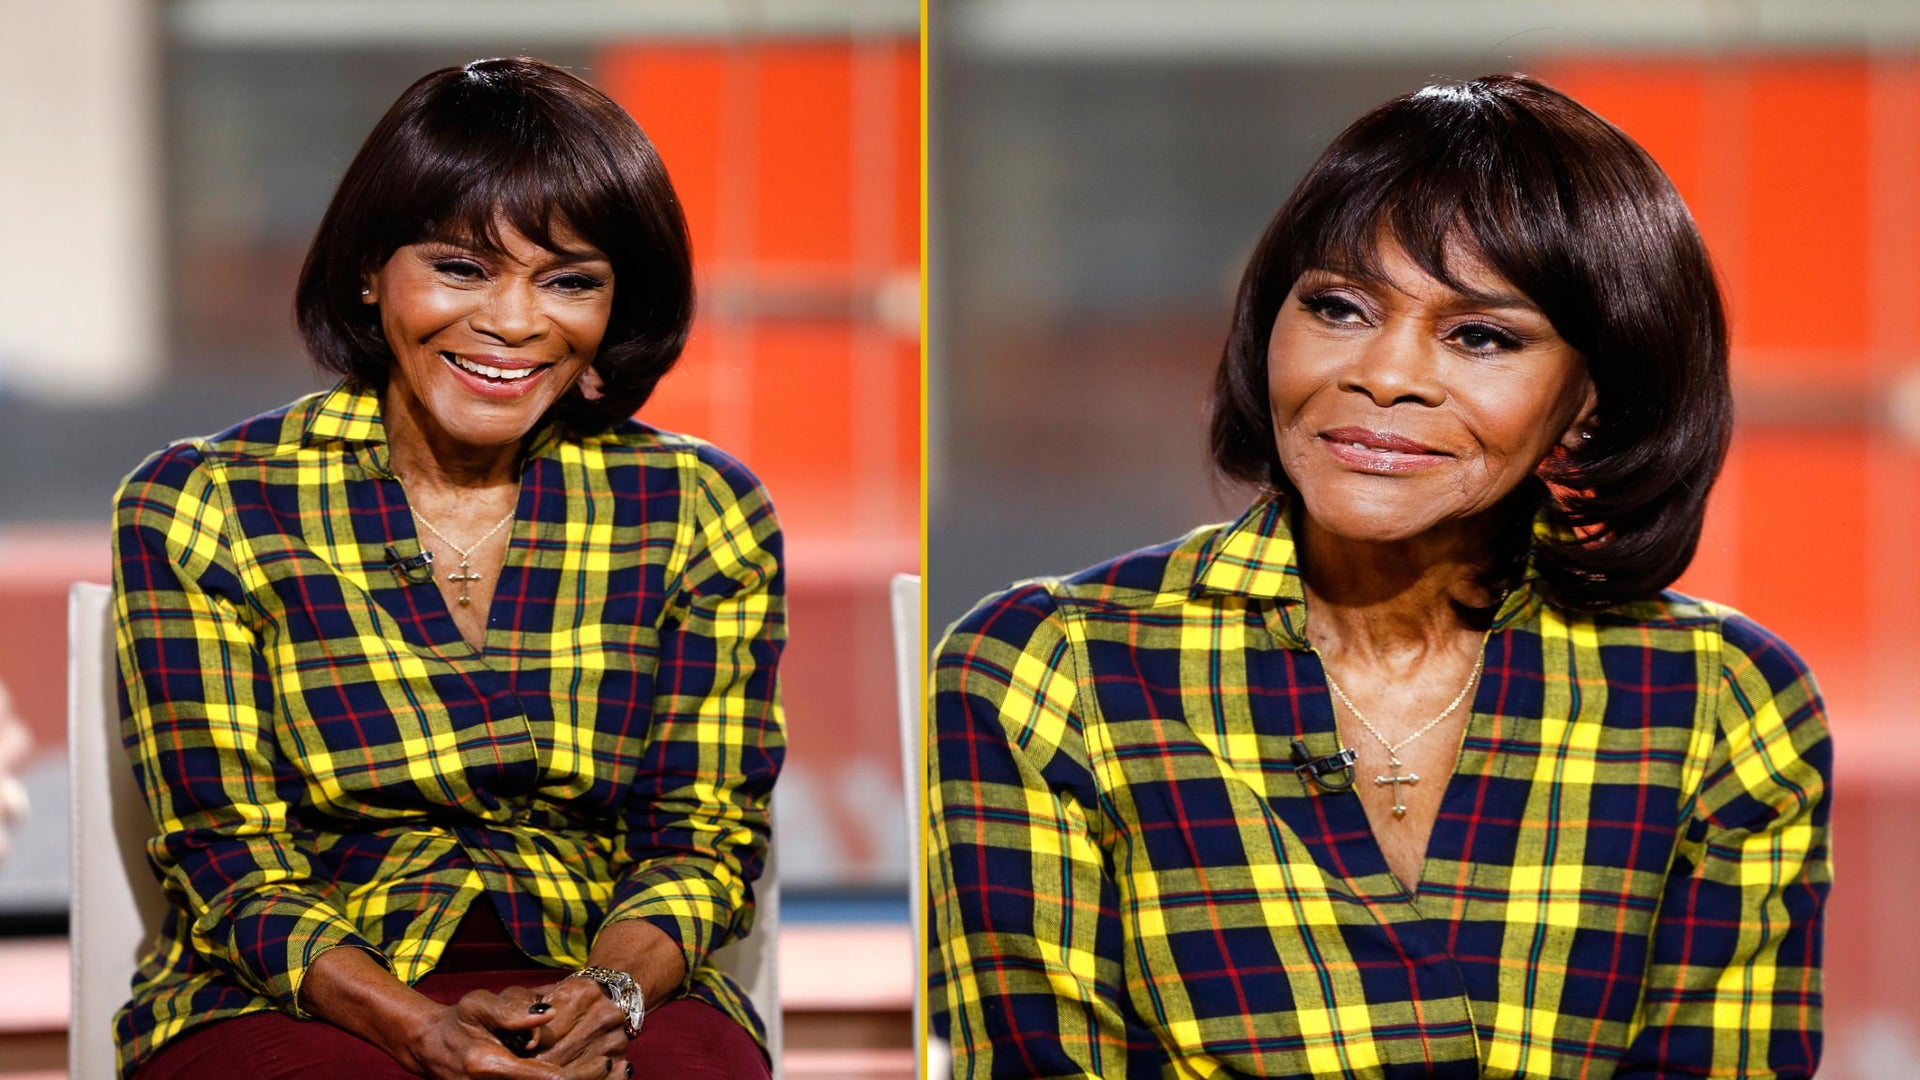 Cicely Tyson Says She's Honored To Be An Inspiration to Black Actresses